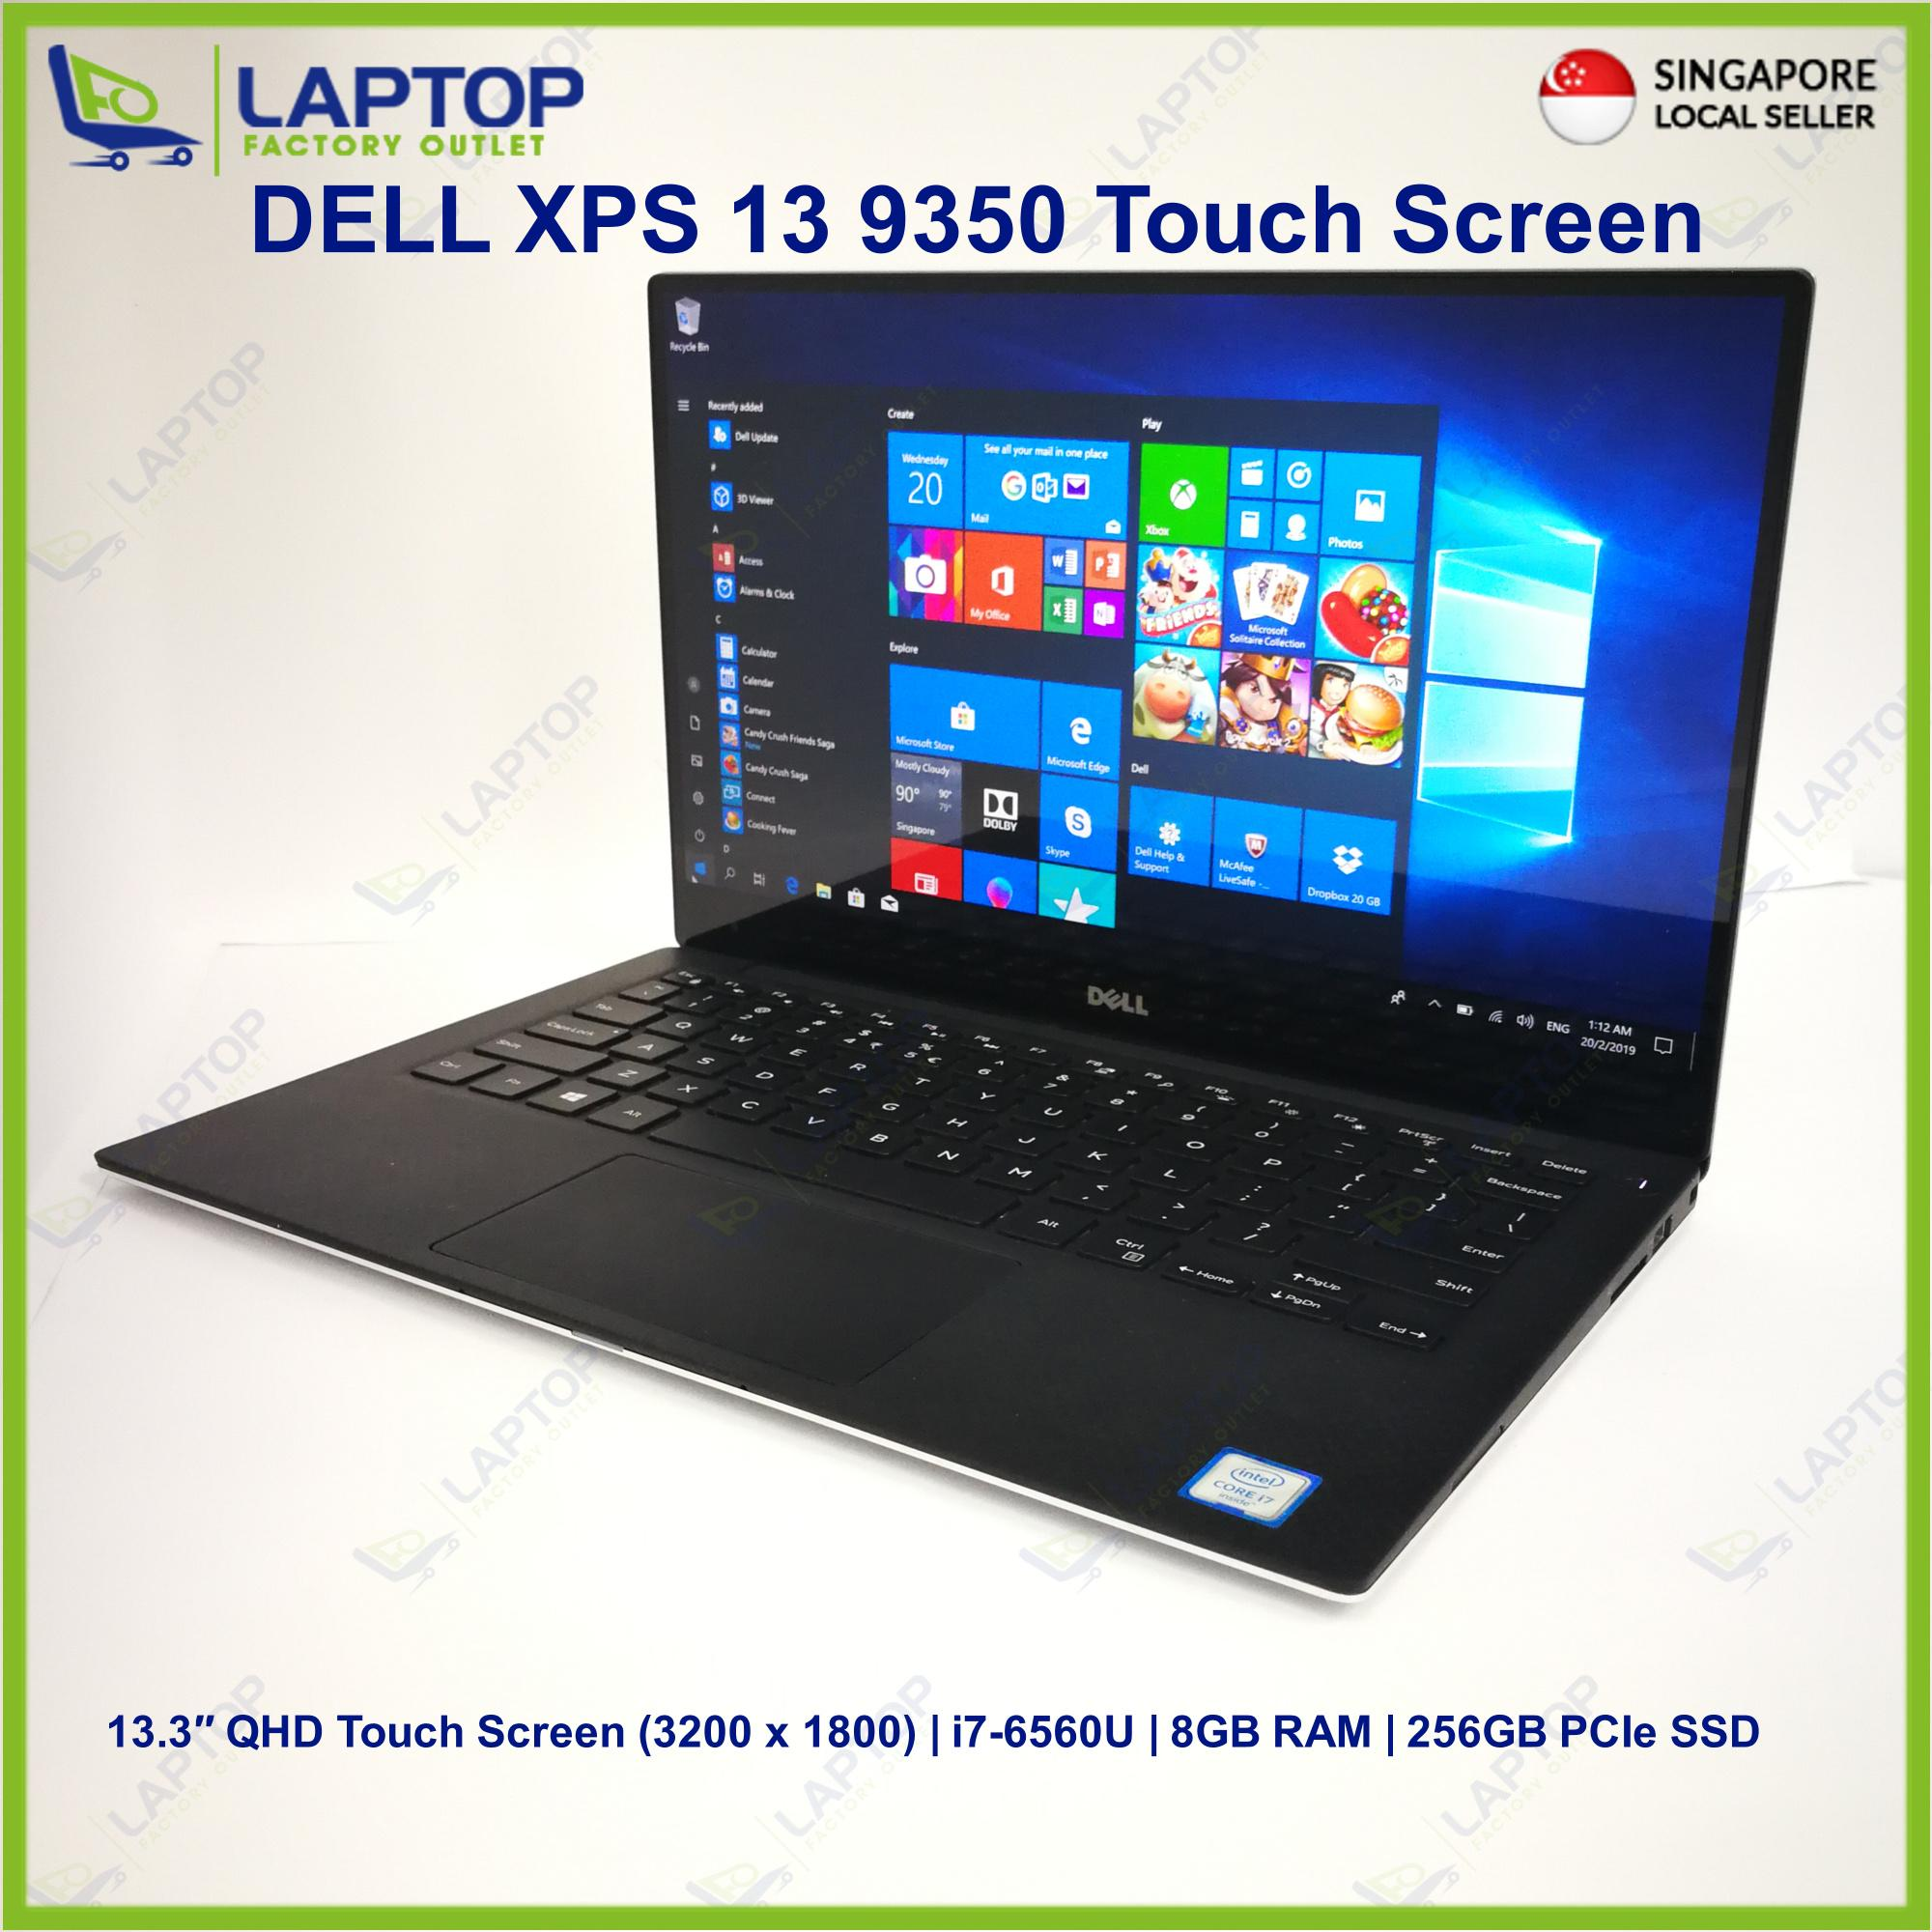 DELL XPS 13 9350 Touch Screen (i7-6/8GB/256GB SSD)